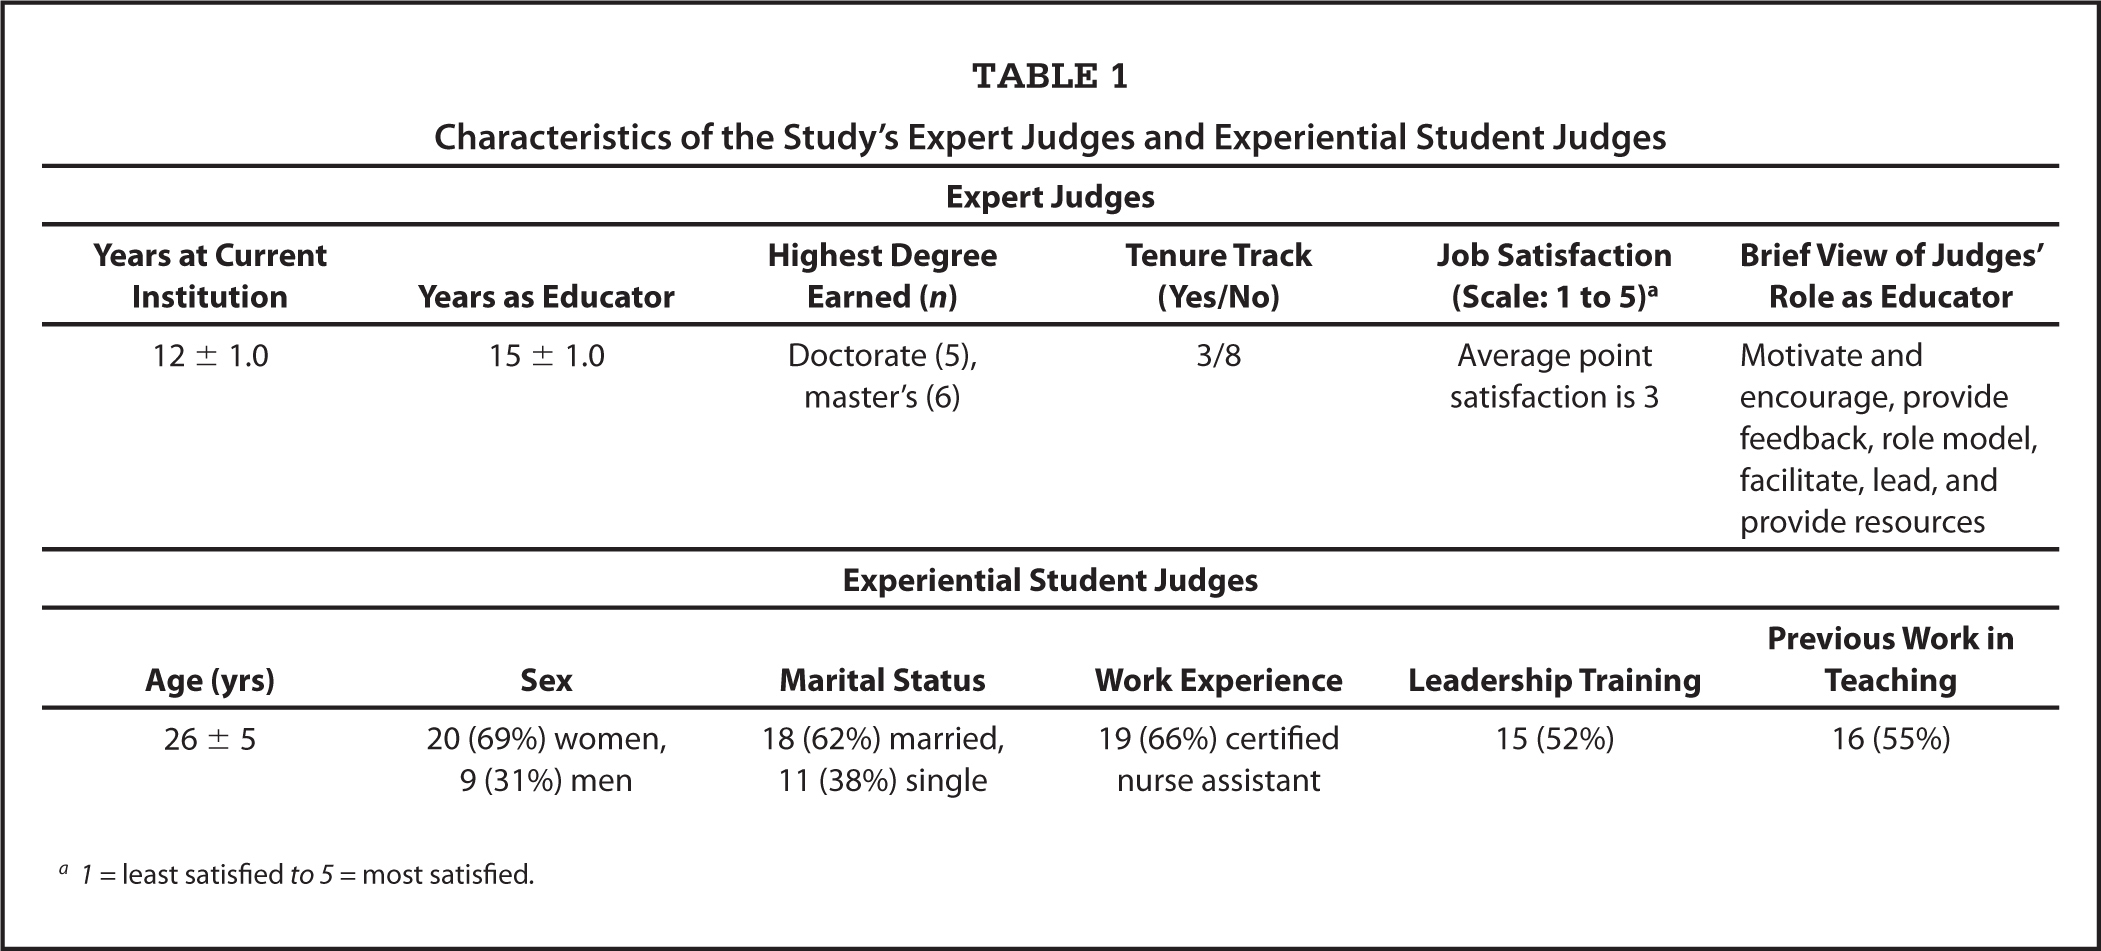 Characteristics of the Study's Expert Judges and Experiential Student Judges